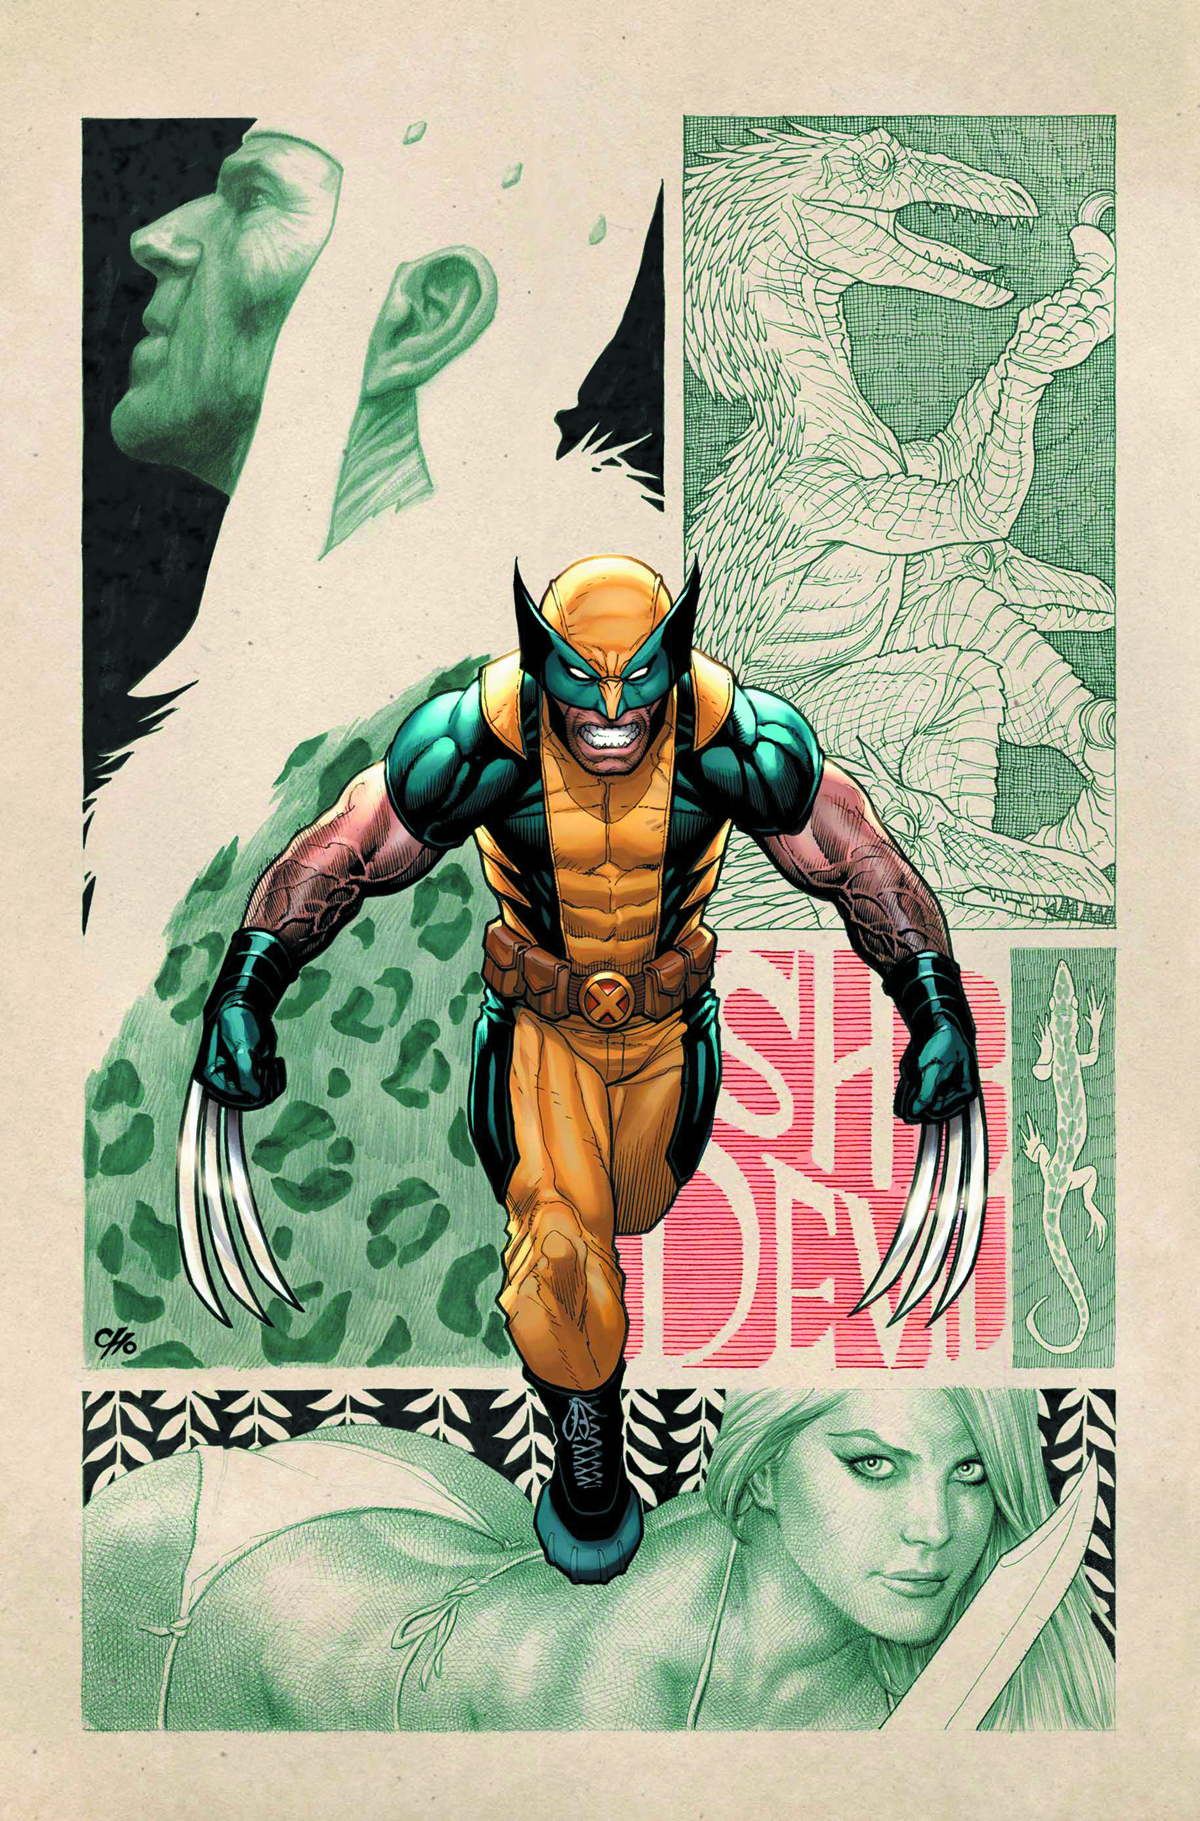 SAVAGE WOLVERINE #2 NOW